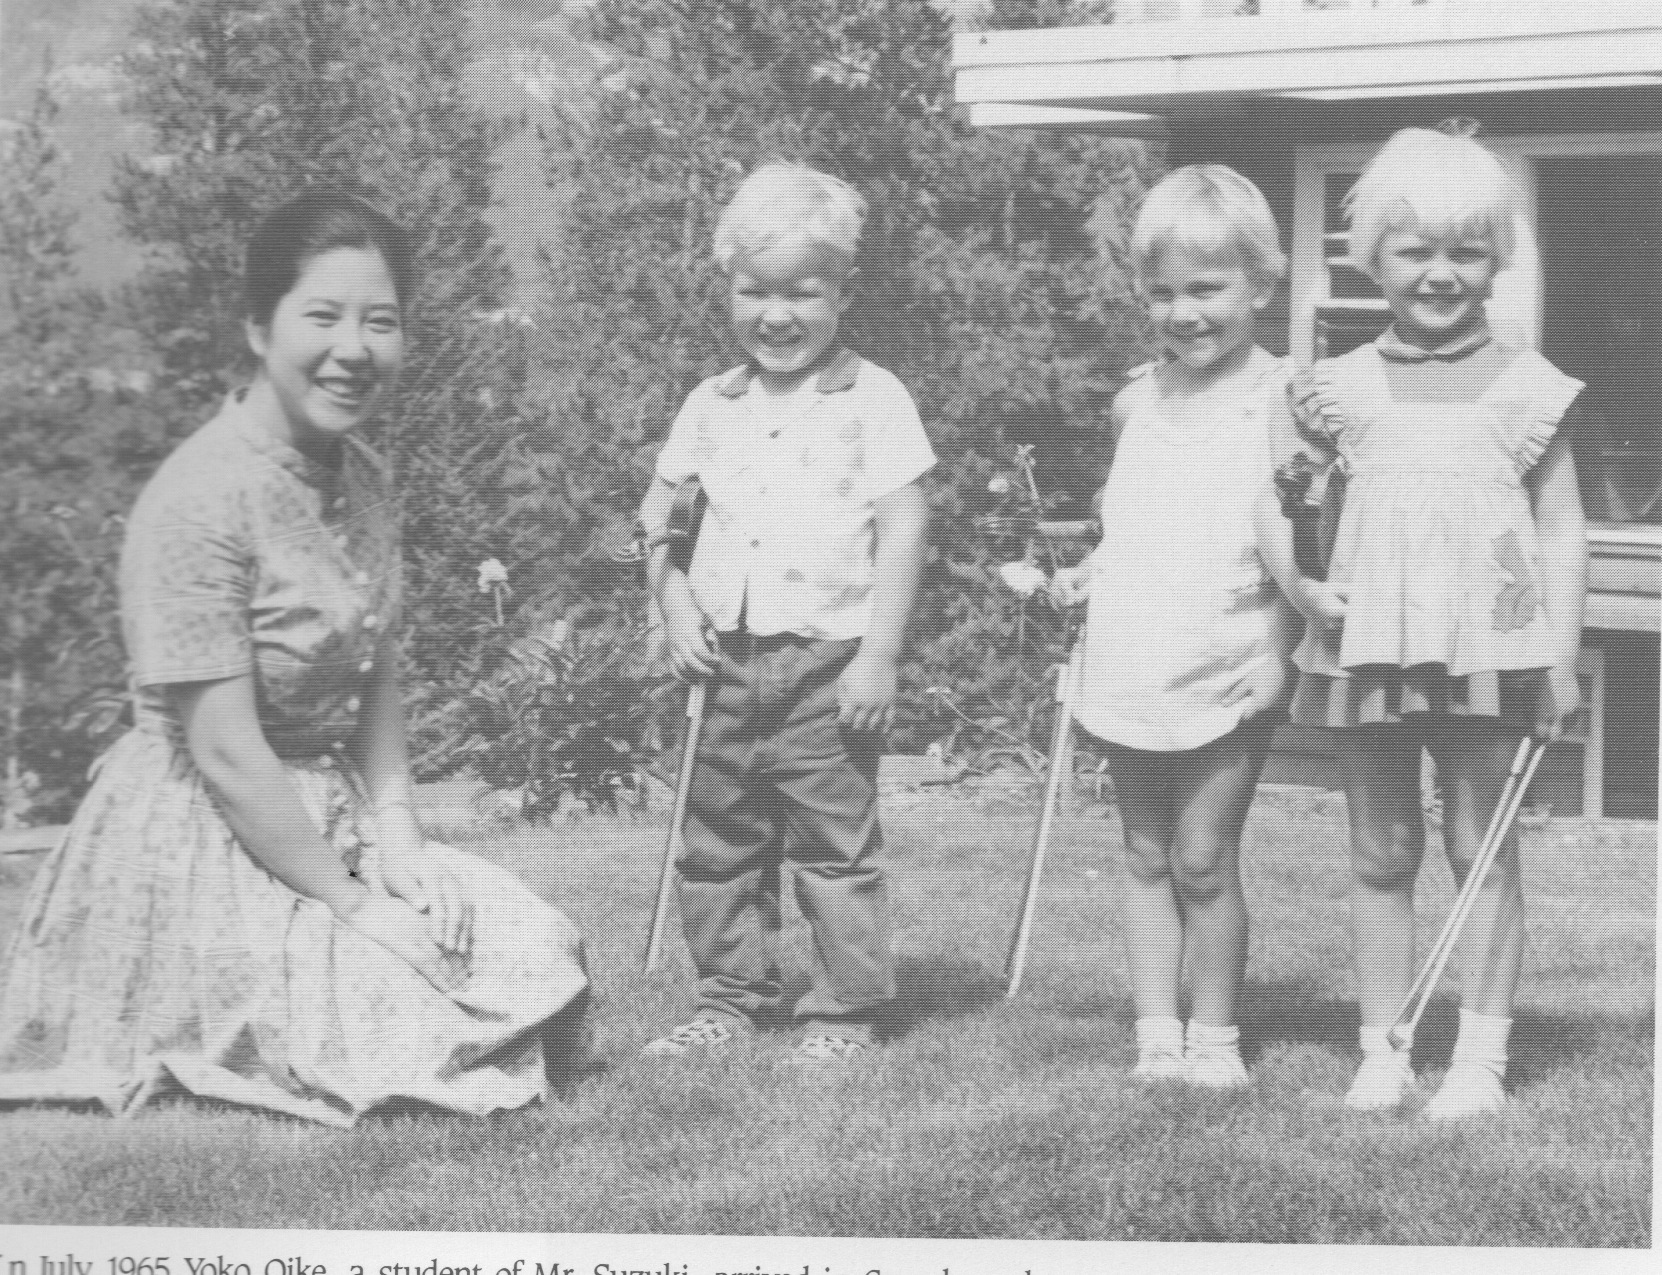 In July1965 Yoko Oike, a student of Dr. Suzuki, arrived in Canada and launched the Edmonton program with two one-week sessions at the Banff School of Fine Arts. Twenty-six children and their mothers attended.